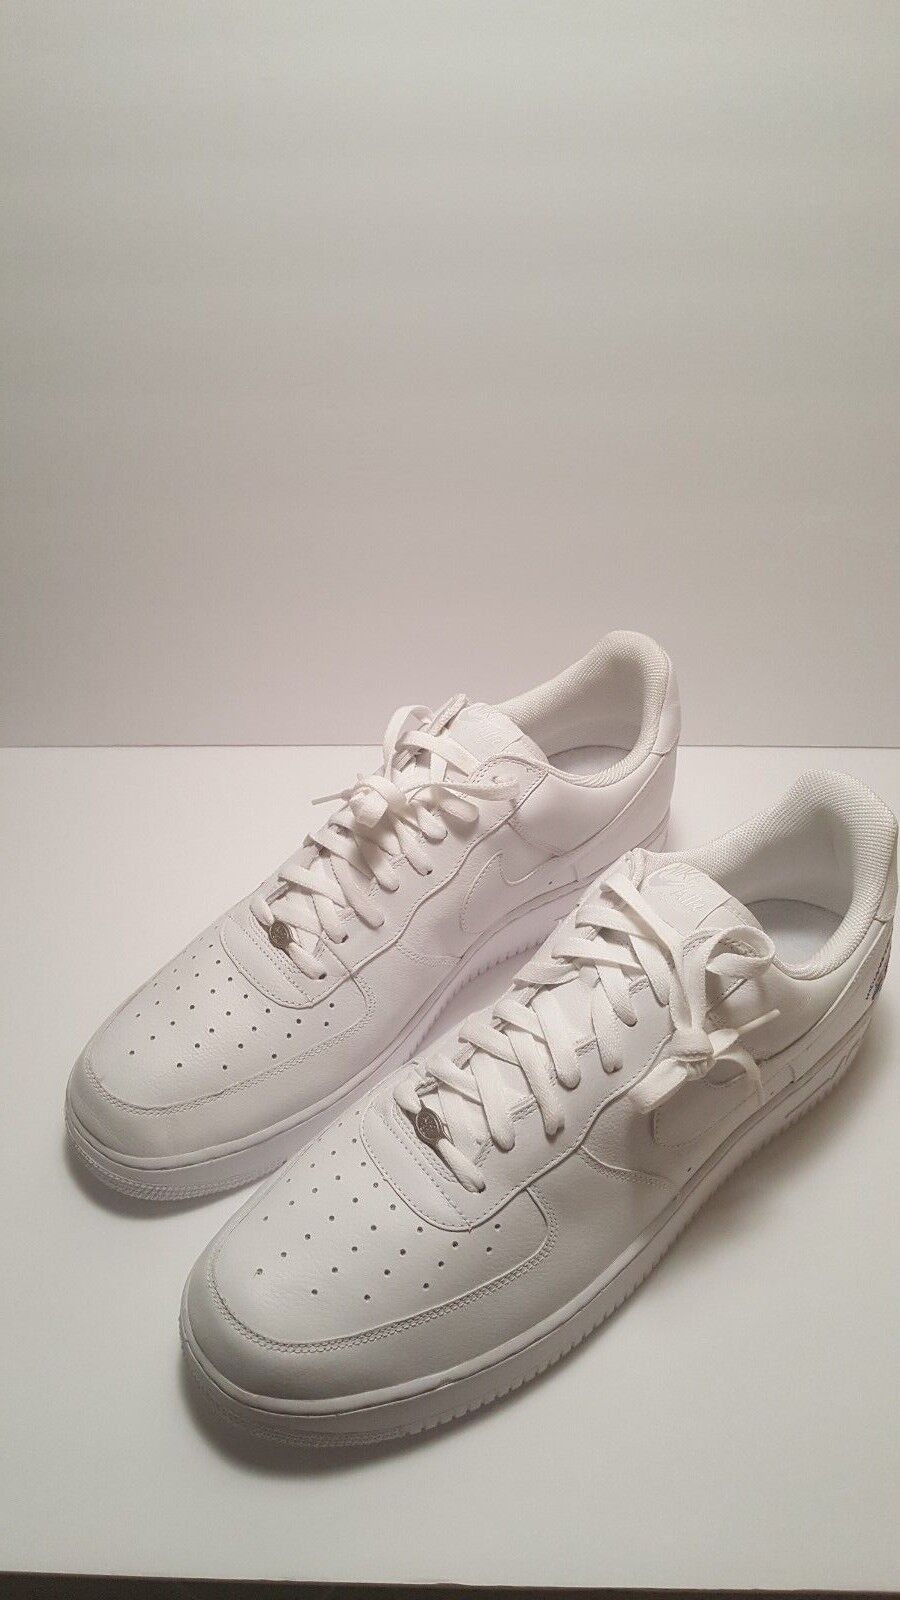 ((NEW)) Men's Nike Air Force 1's Low 06 INDIANAPOLIS Size 18